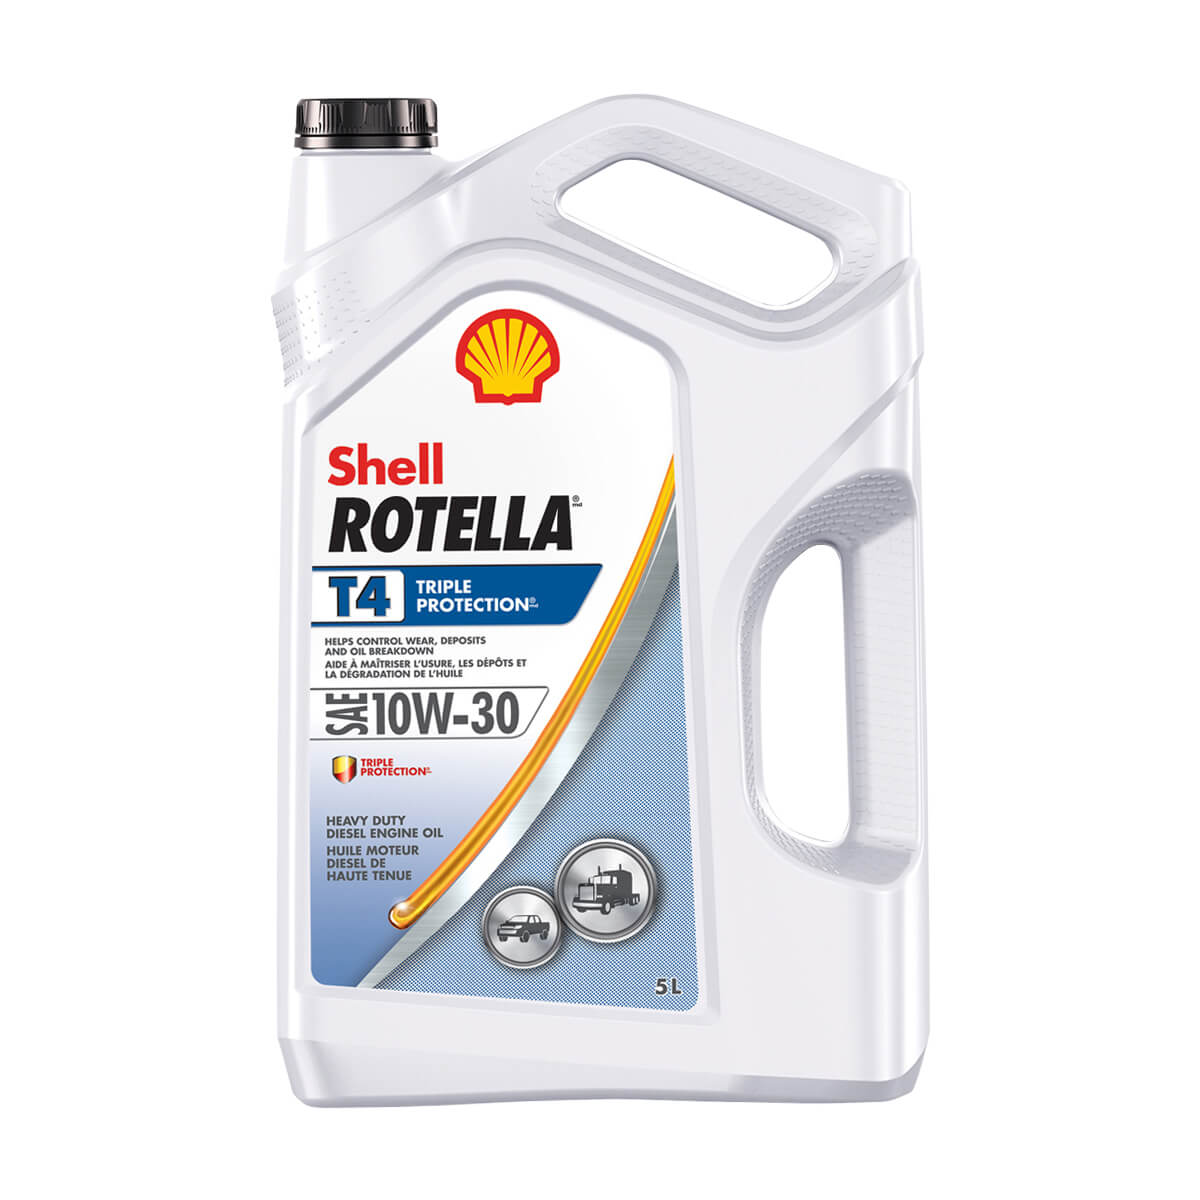 Shell Rotella T4 Triple Protection 10W-30 - 5 L